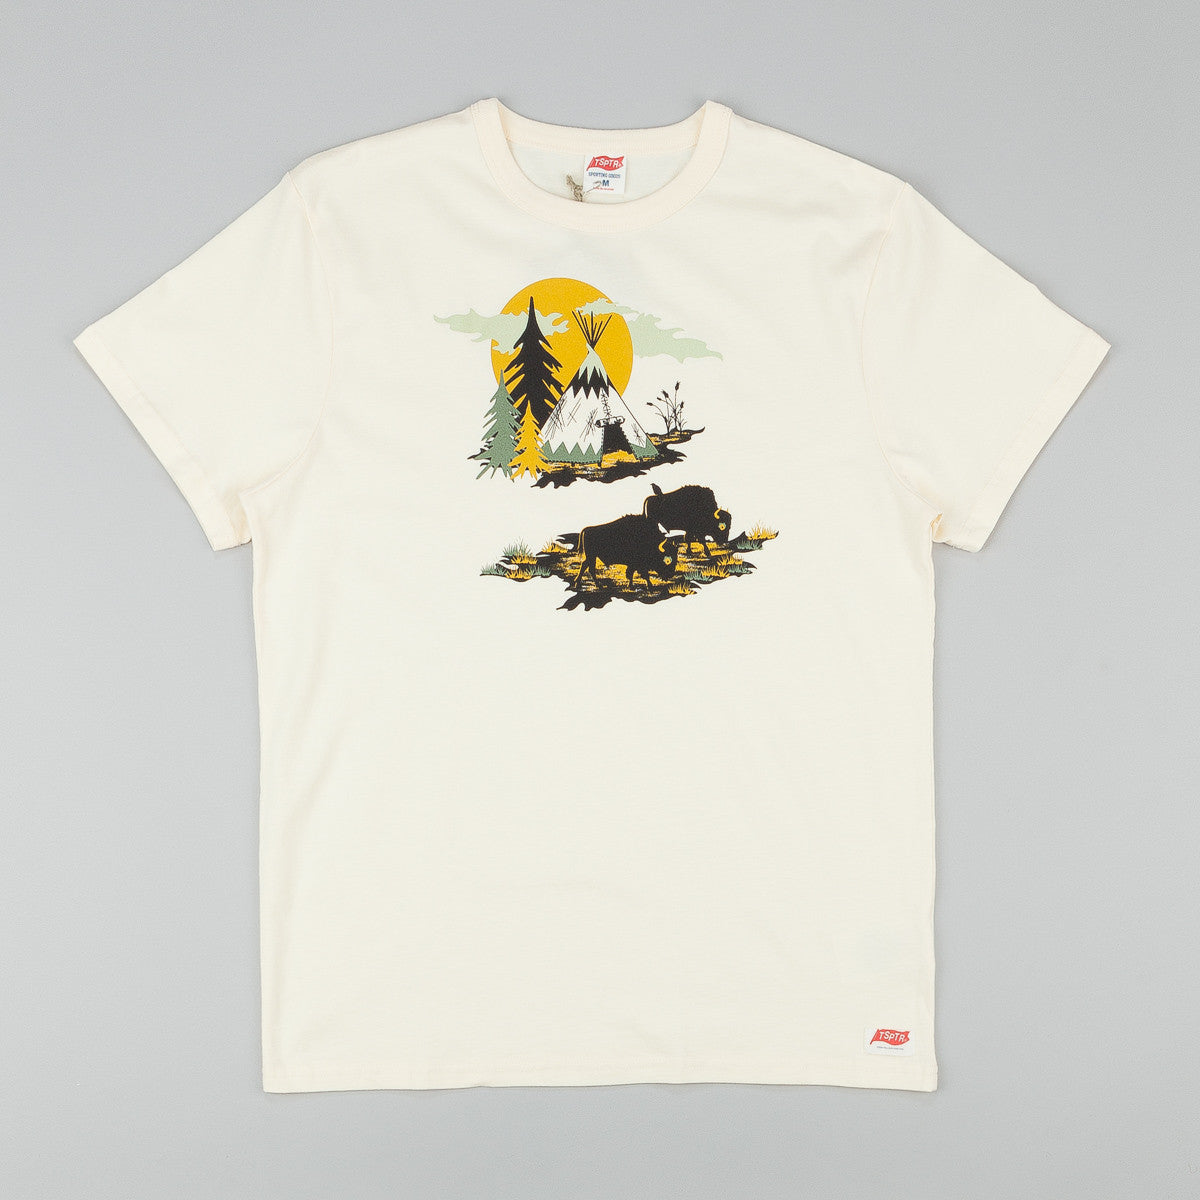 TSPTR X Knight Mills Bison Autumn Plains T-Shirt